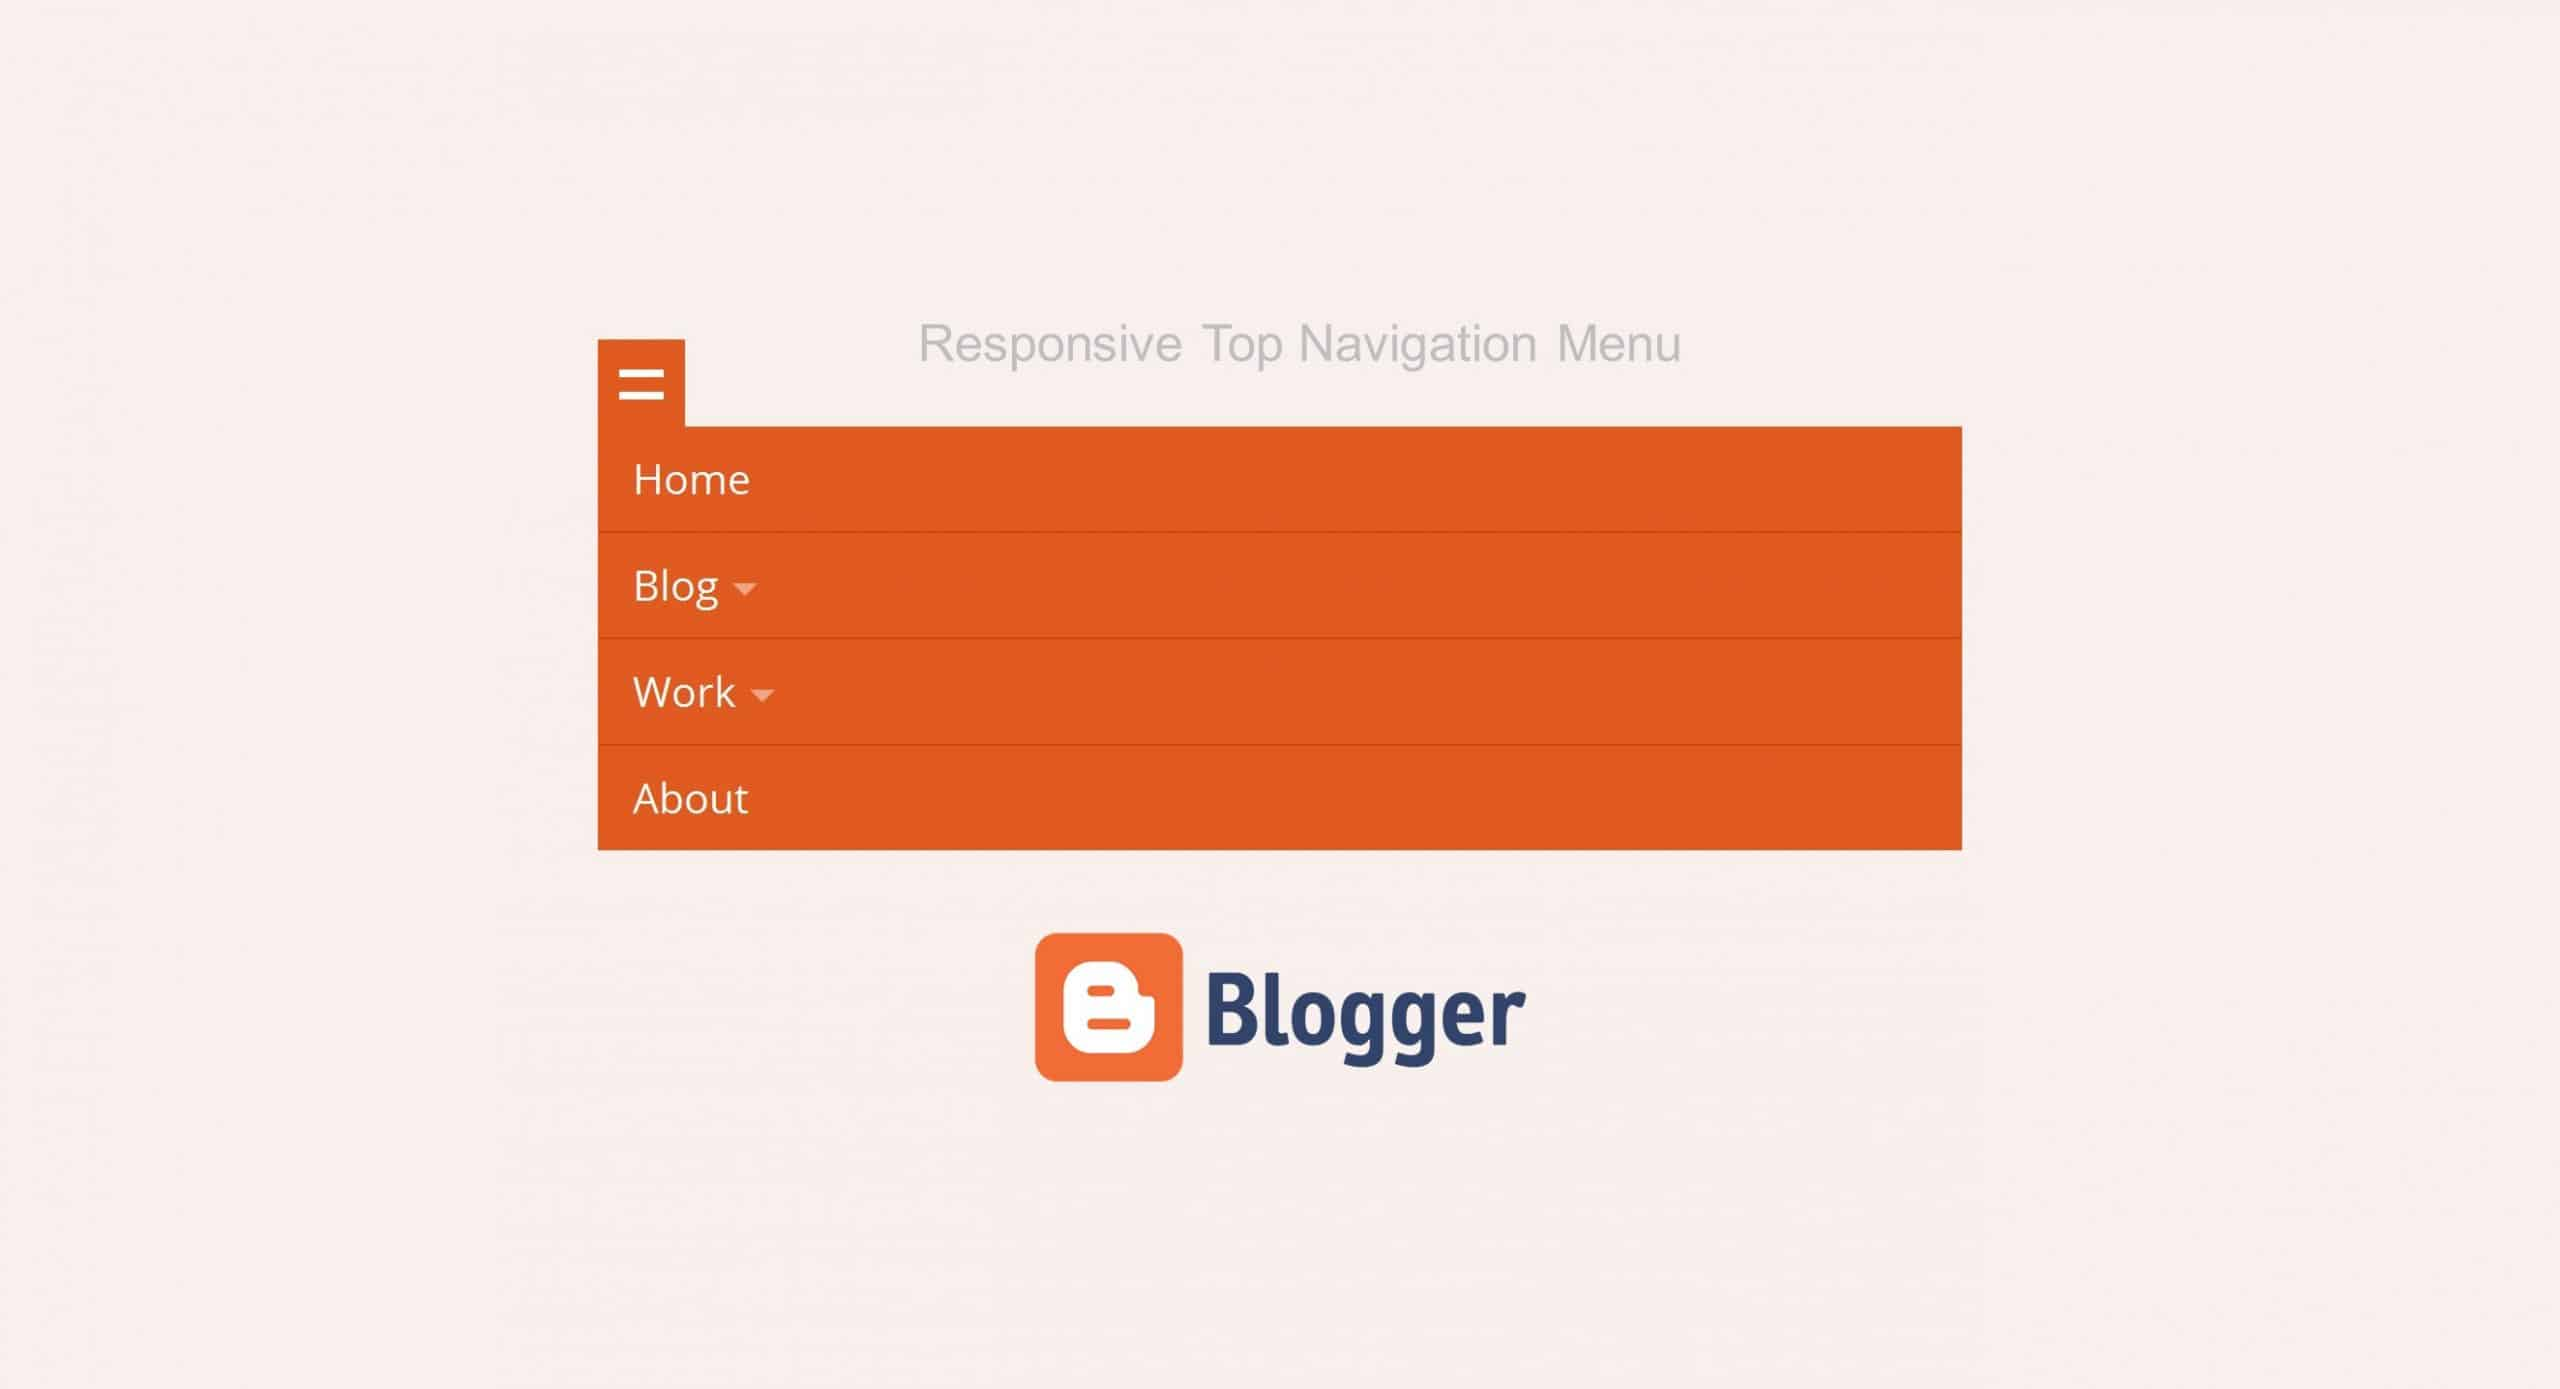 Responsive Top Navigation Menu cho Blogspot